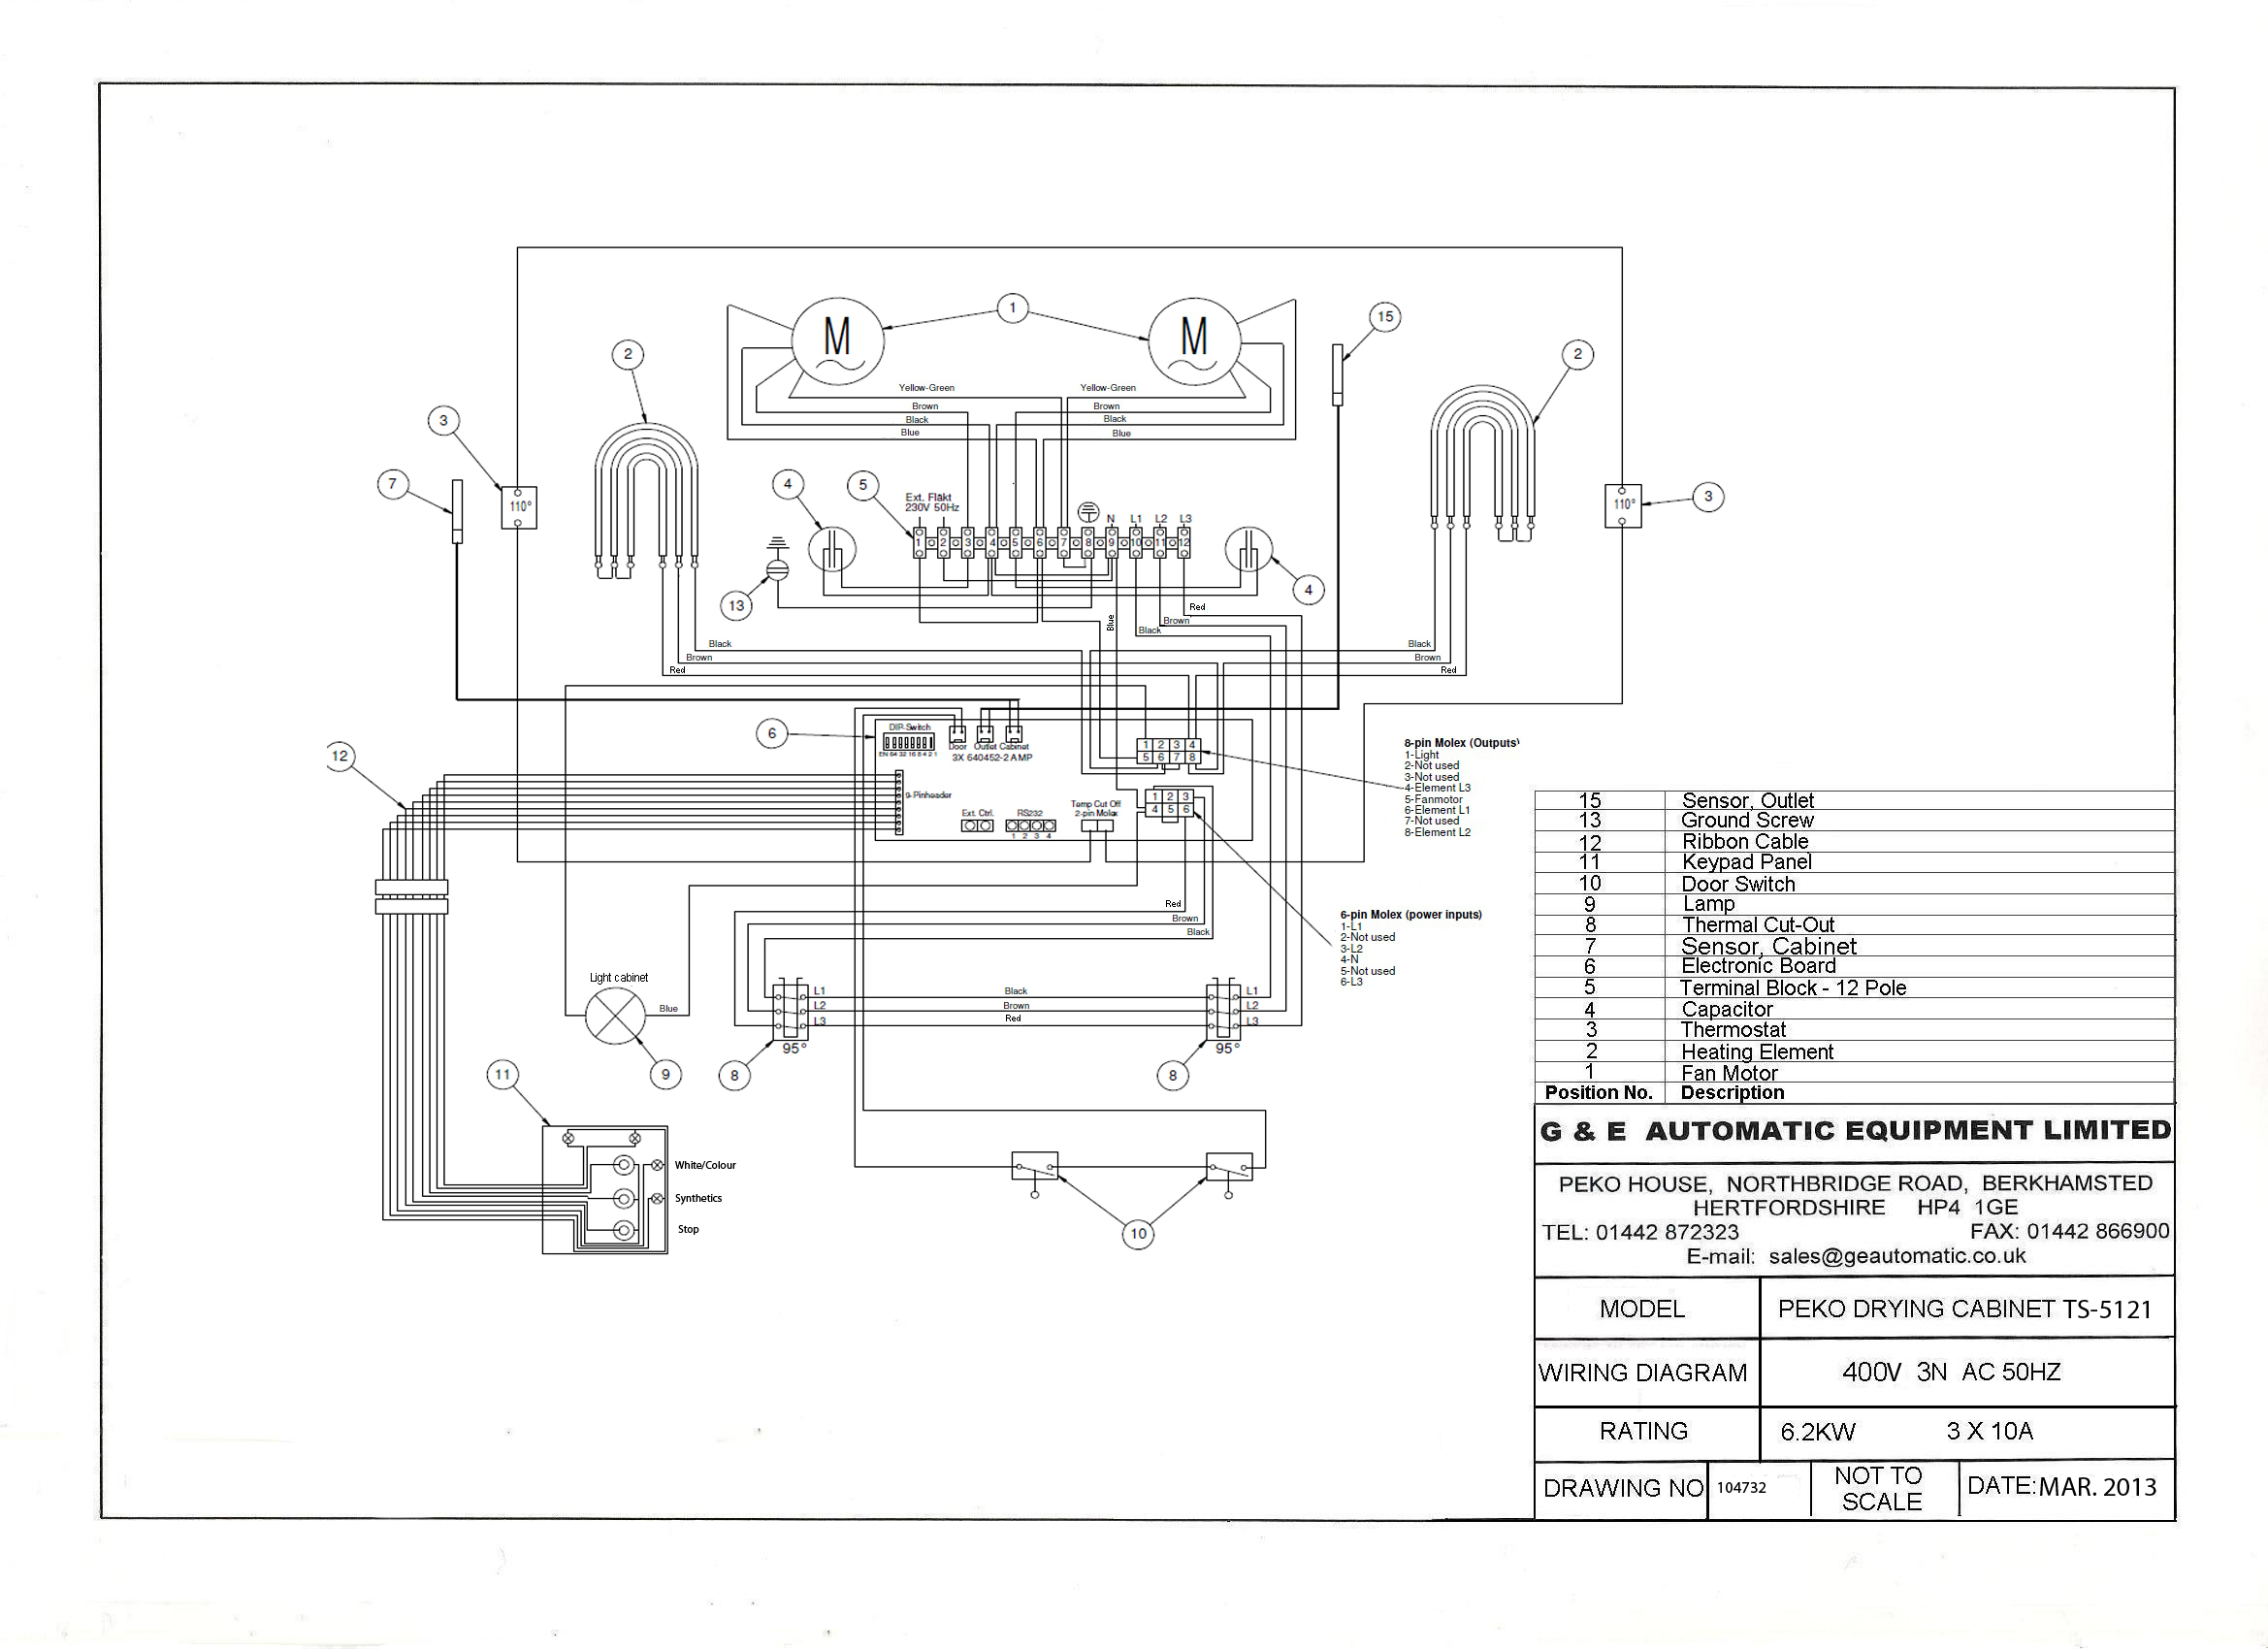 TS5121 wiring diagram 400v Three phase English1 wiring diagrams peko drying cabinets